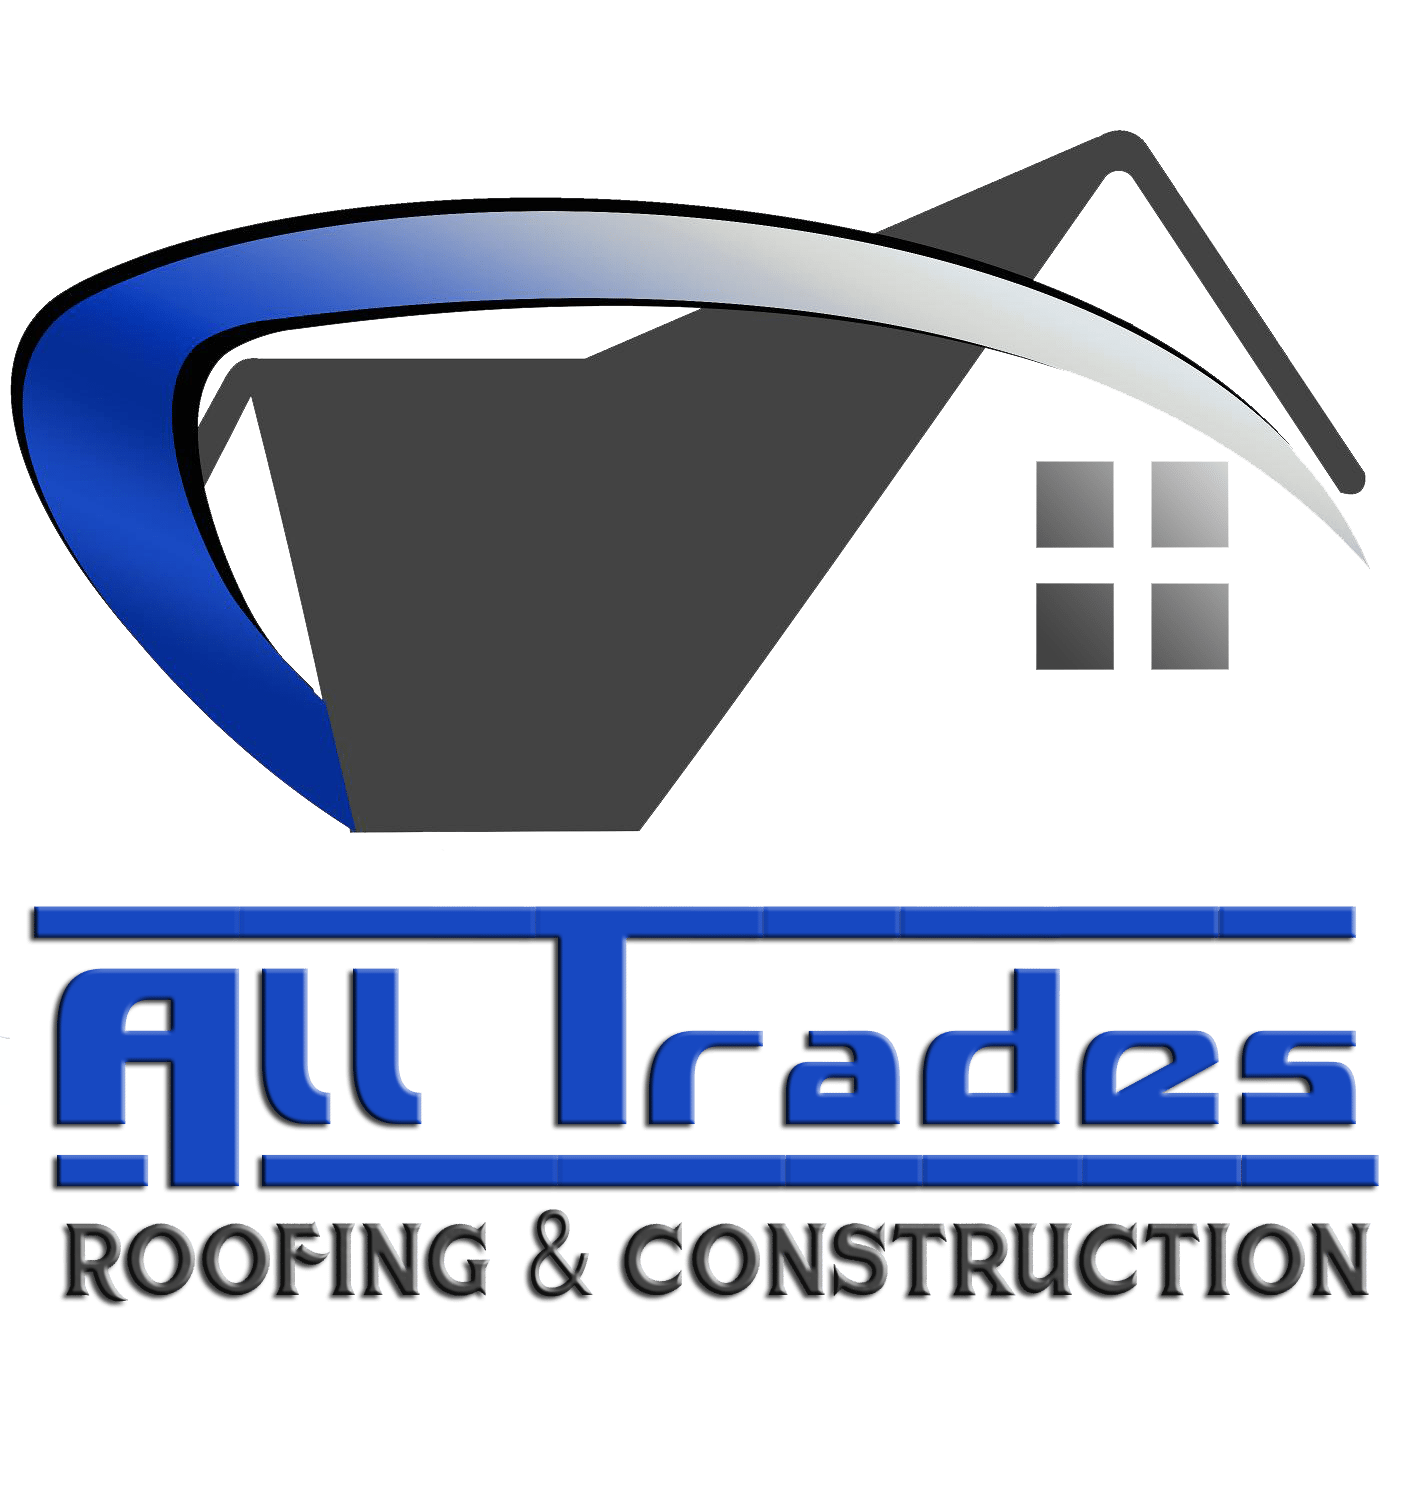 Best residential commercial roofing. Contractor clipart building trade